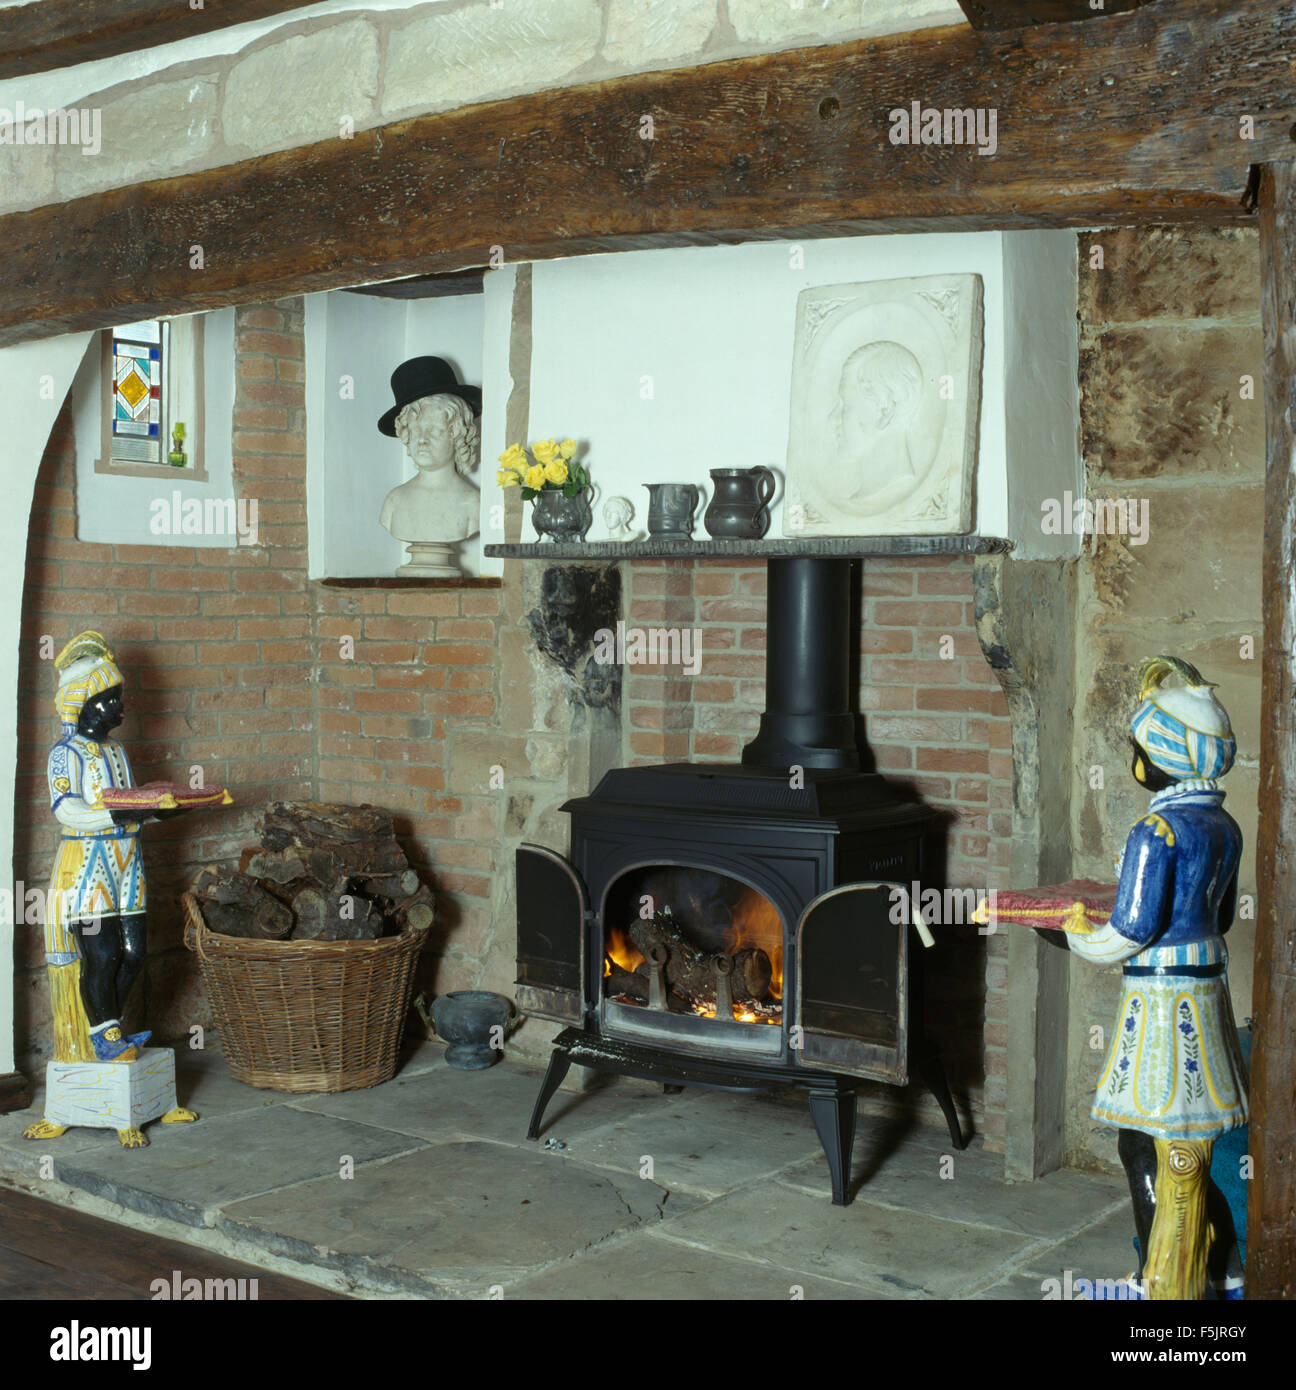 Blackamoor china figures either side of a wood burning stove in an inglenook fireplace - Stock Image